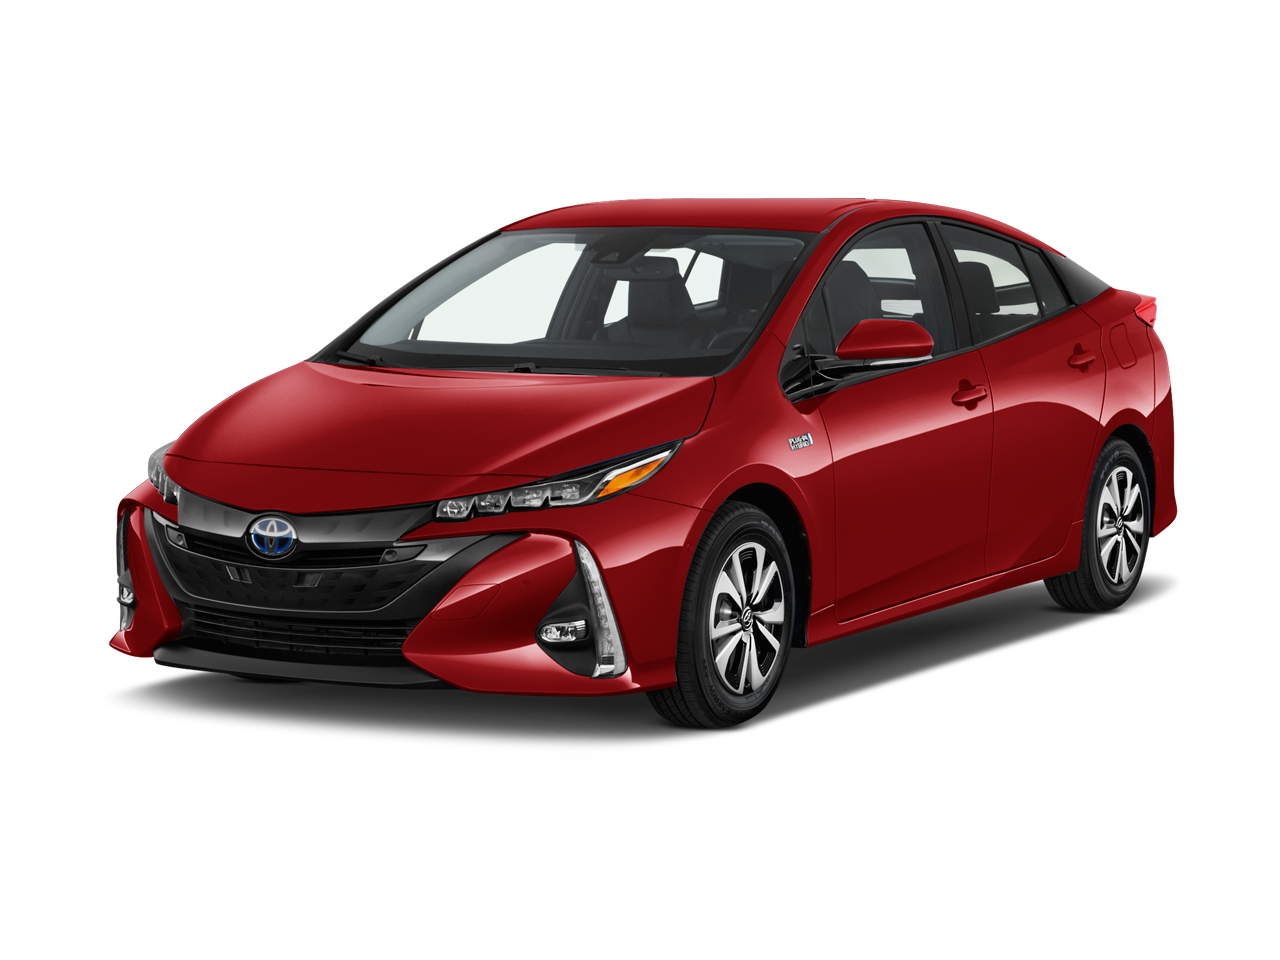 new 2017 toyota prius prime advanced carroll ia near. Black Bedroom Furniture Sets. Home Design Ideas